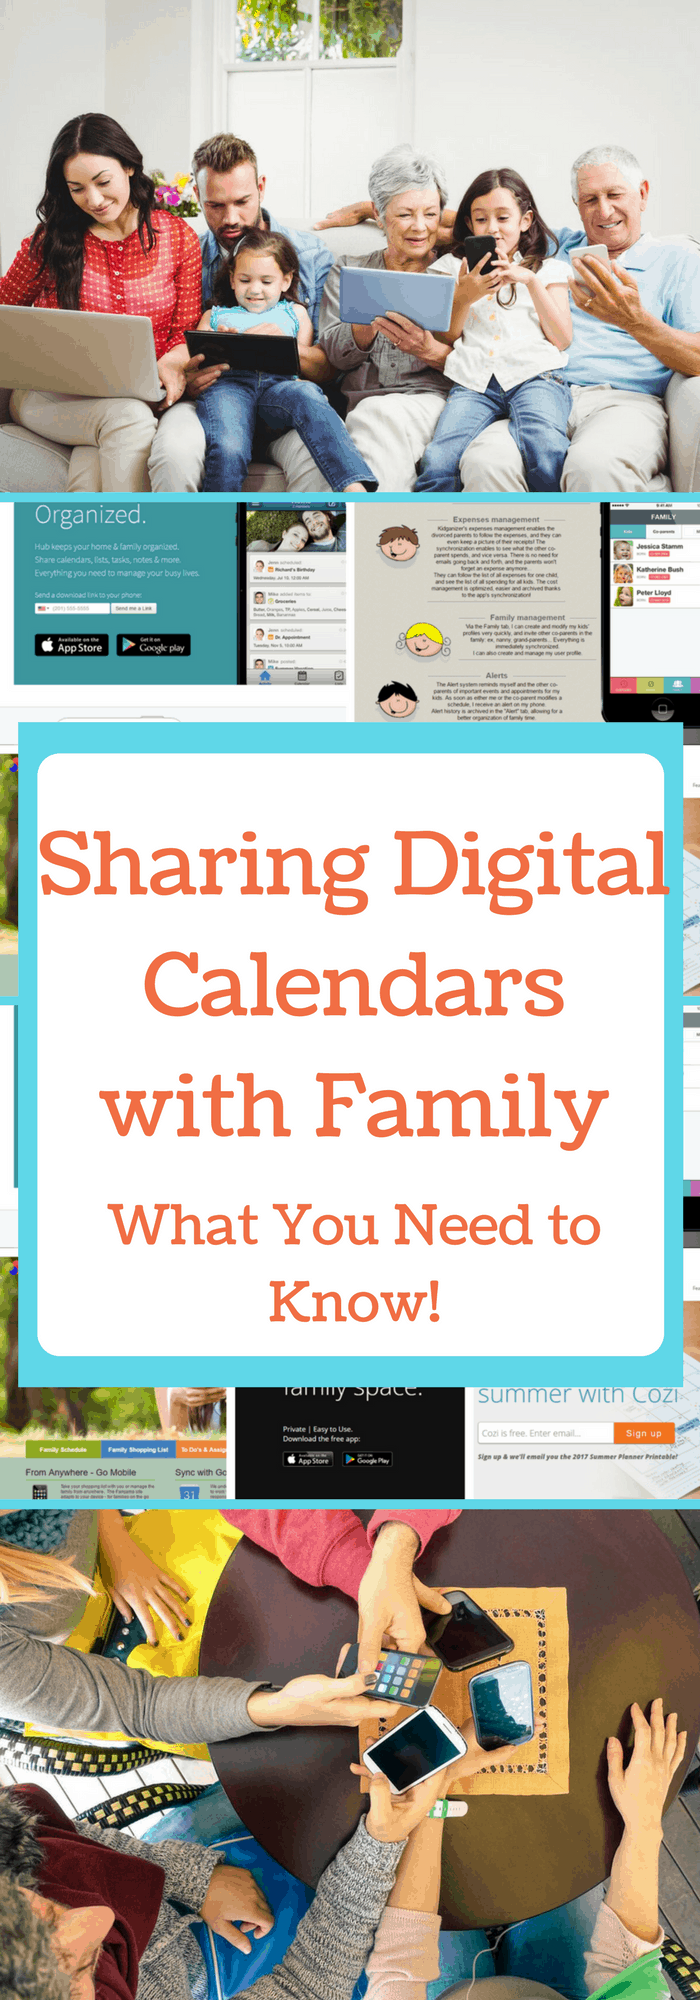 Family Calendar Sharing : Sharing digital calendars with the family what you need